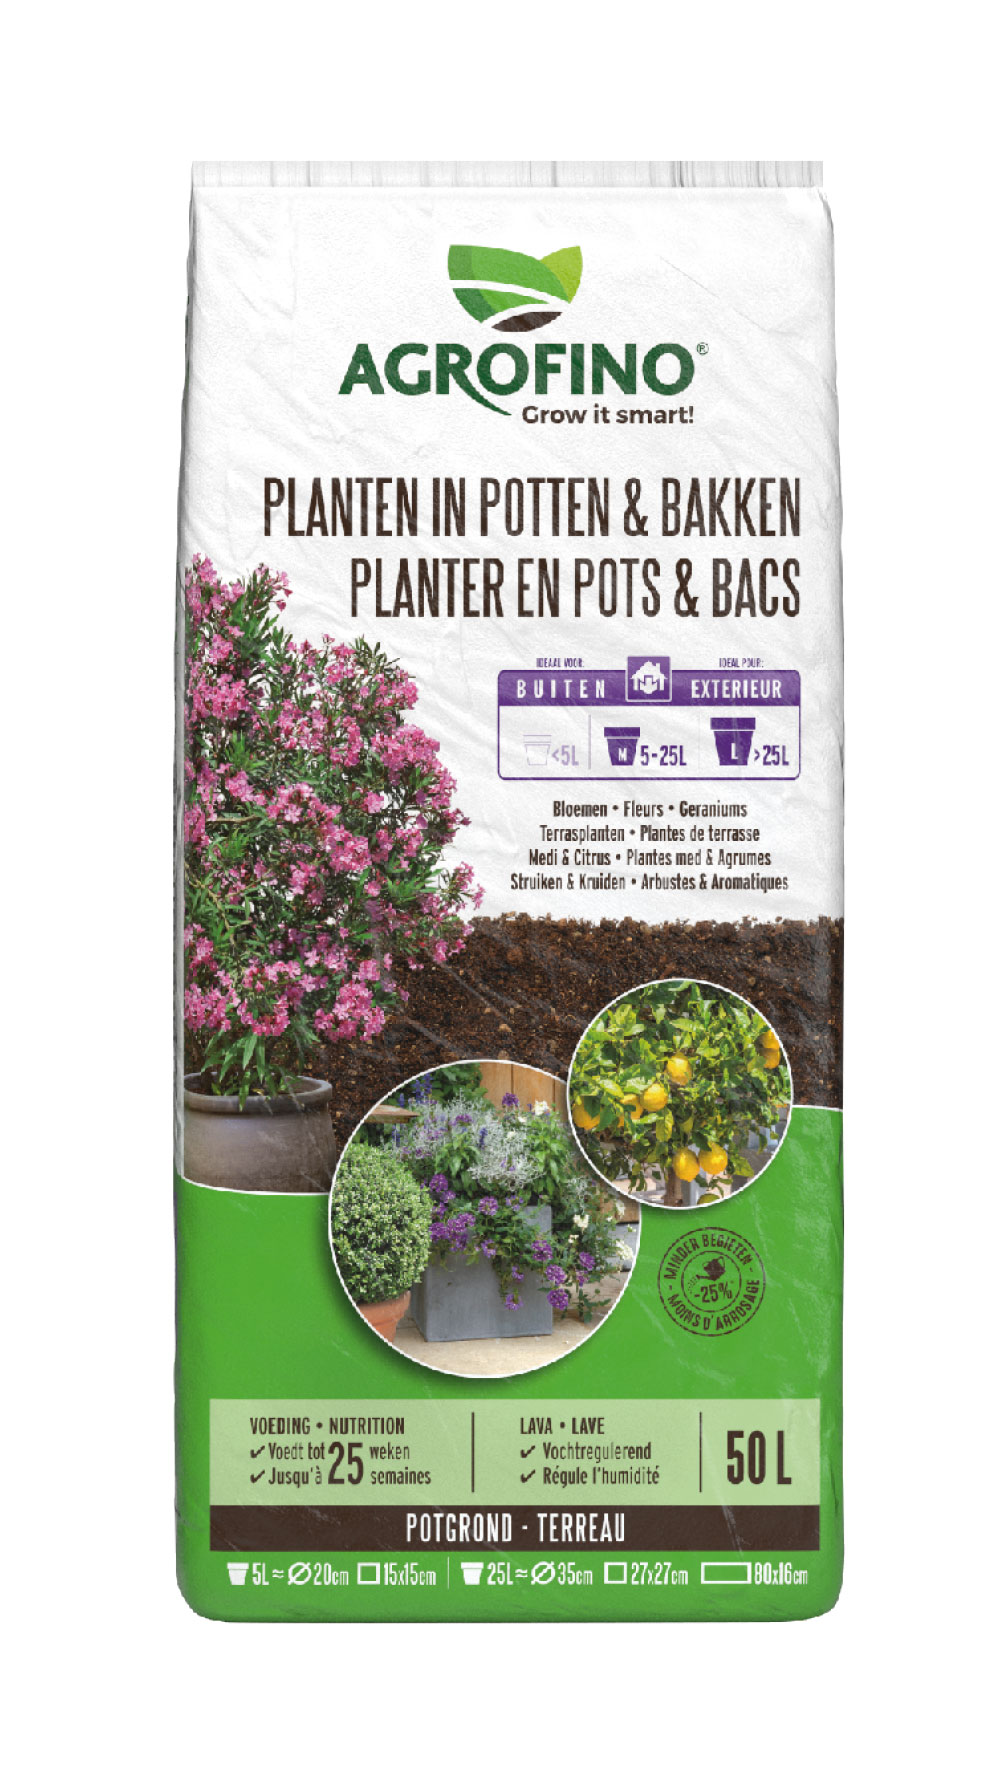 PLANTEN IN POTTEN & BAKKEN